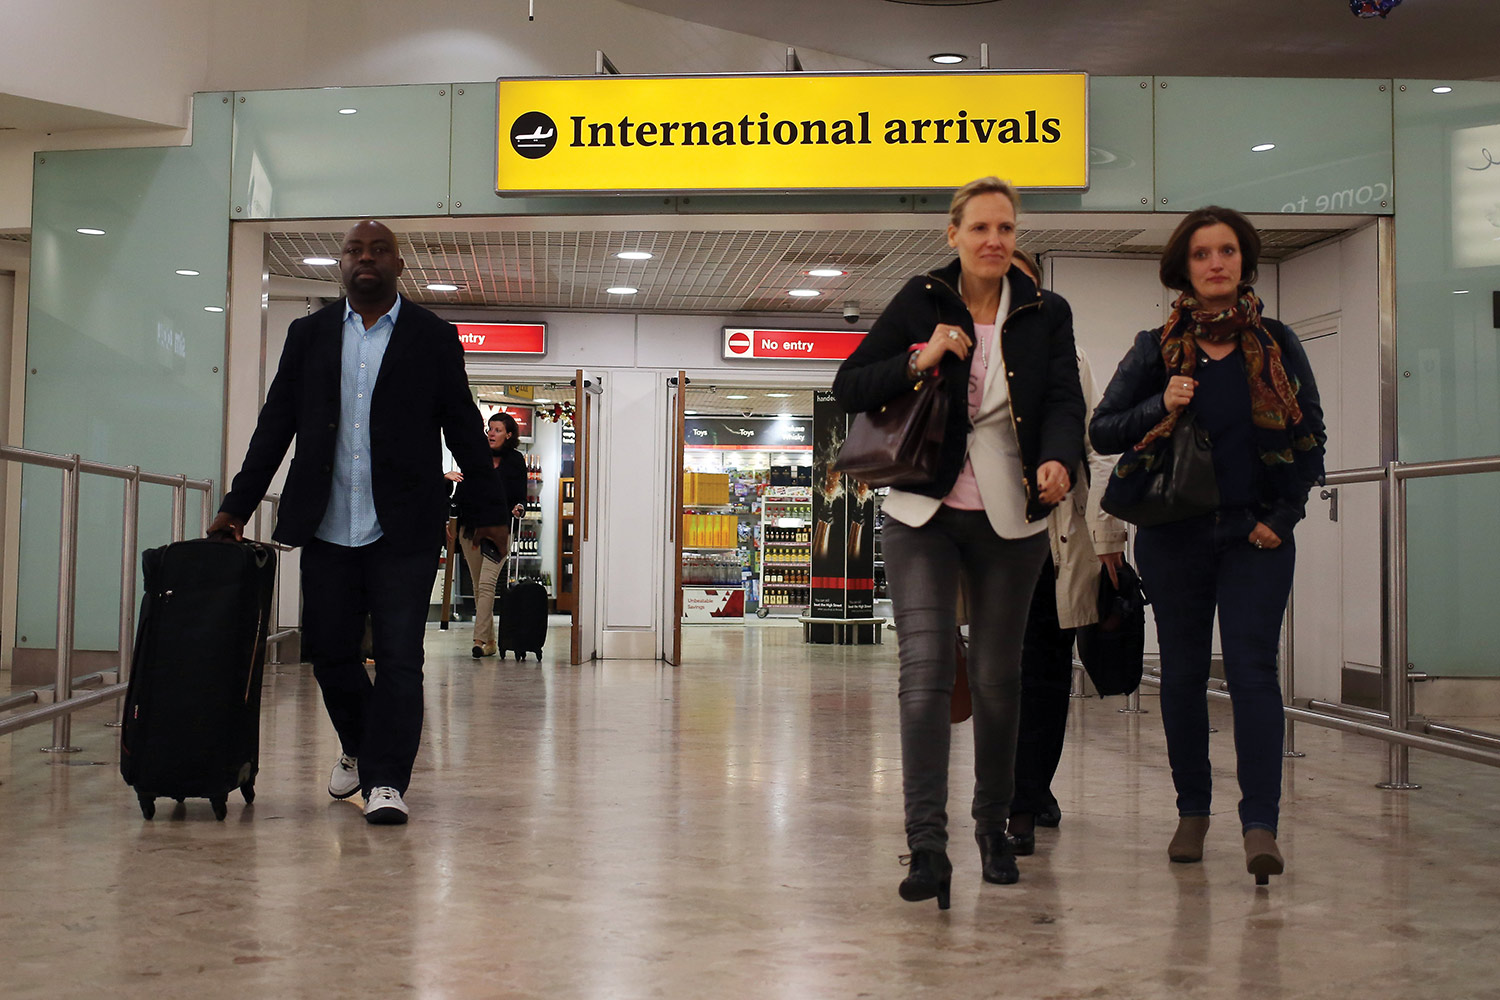 Ebola fear factor playing a part in latest travel share slump